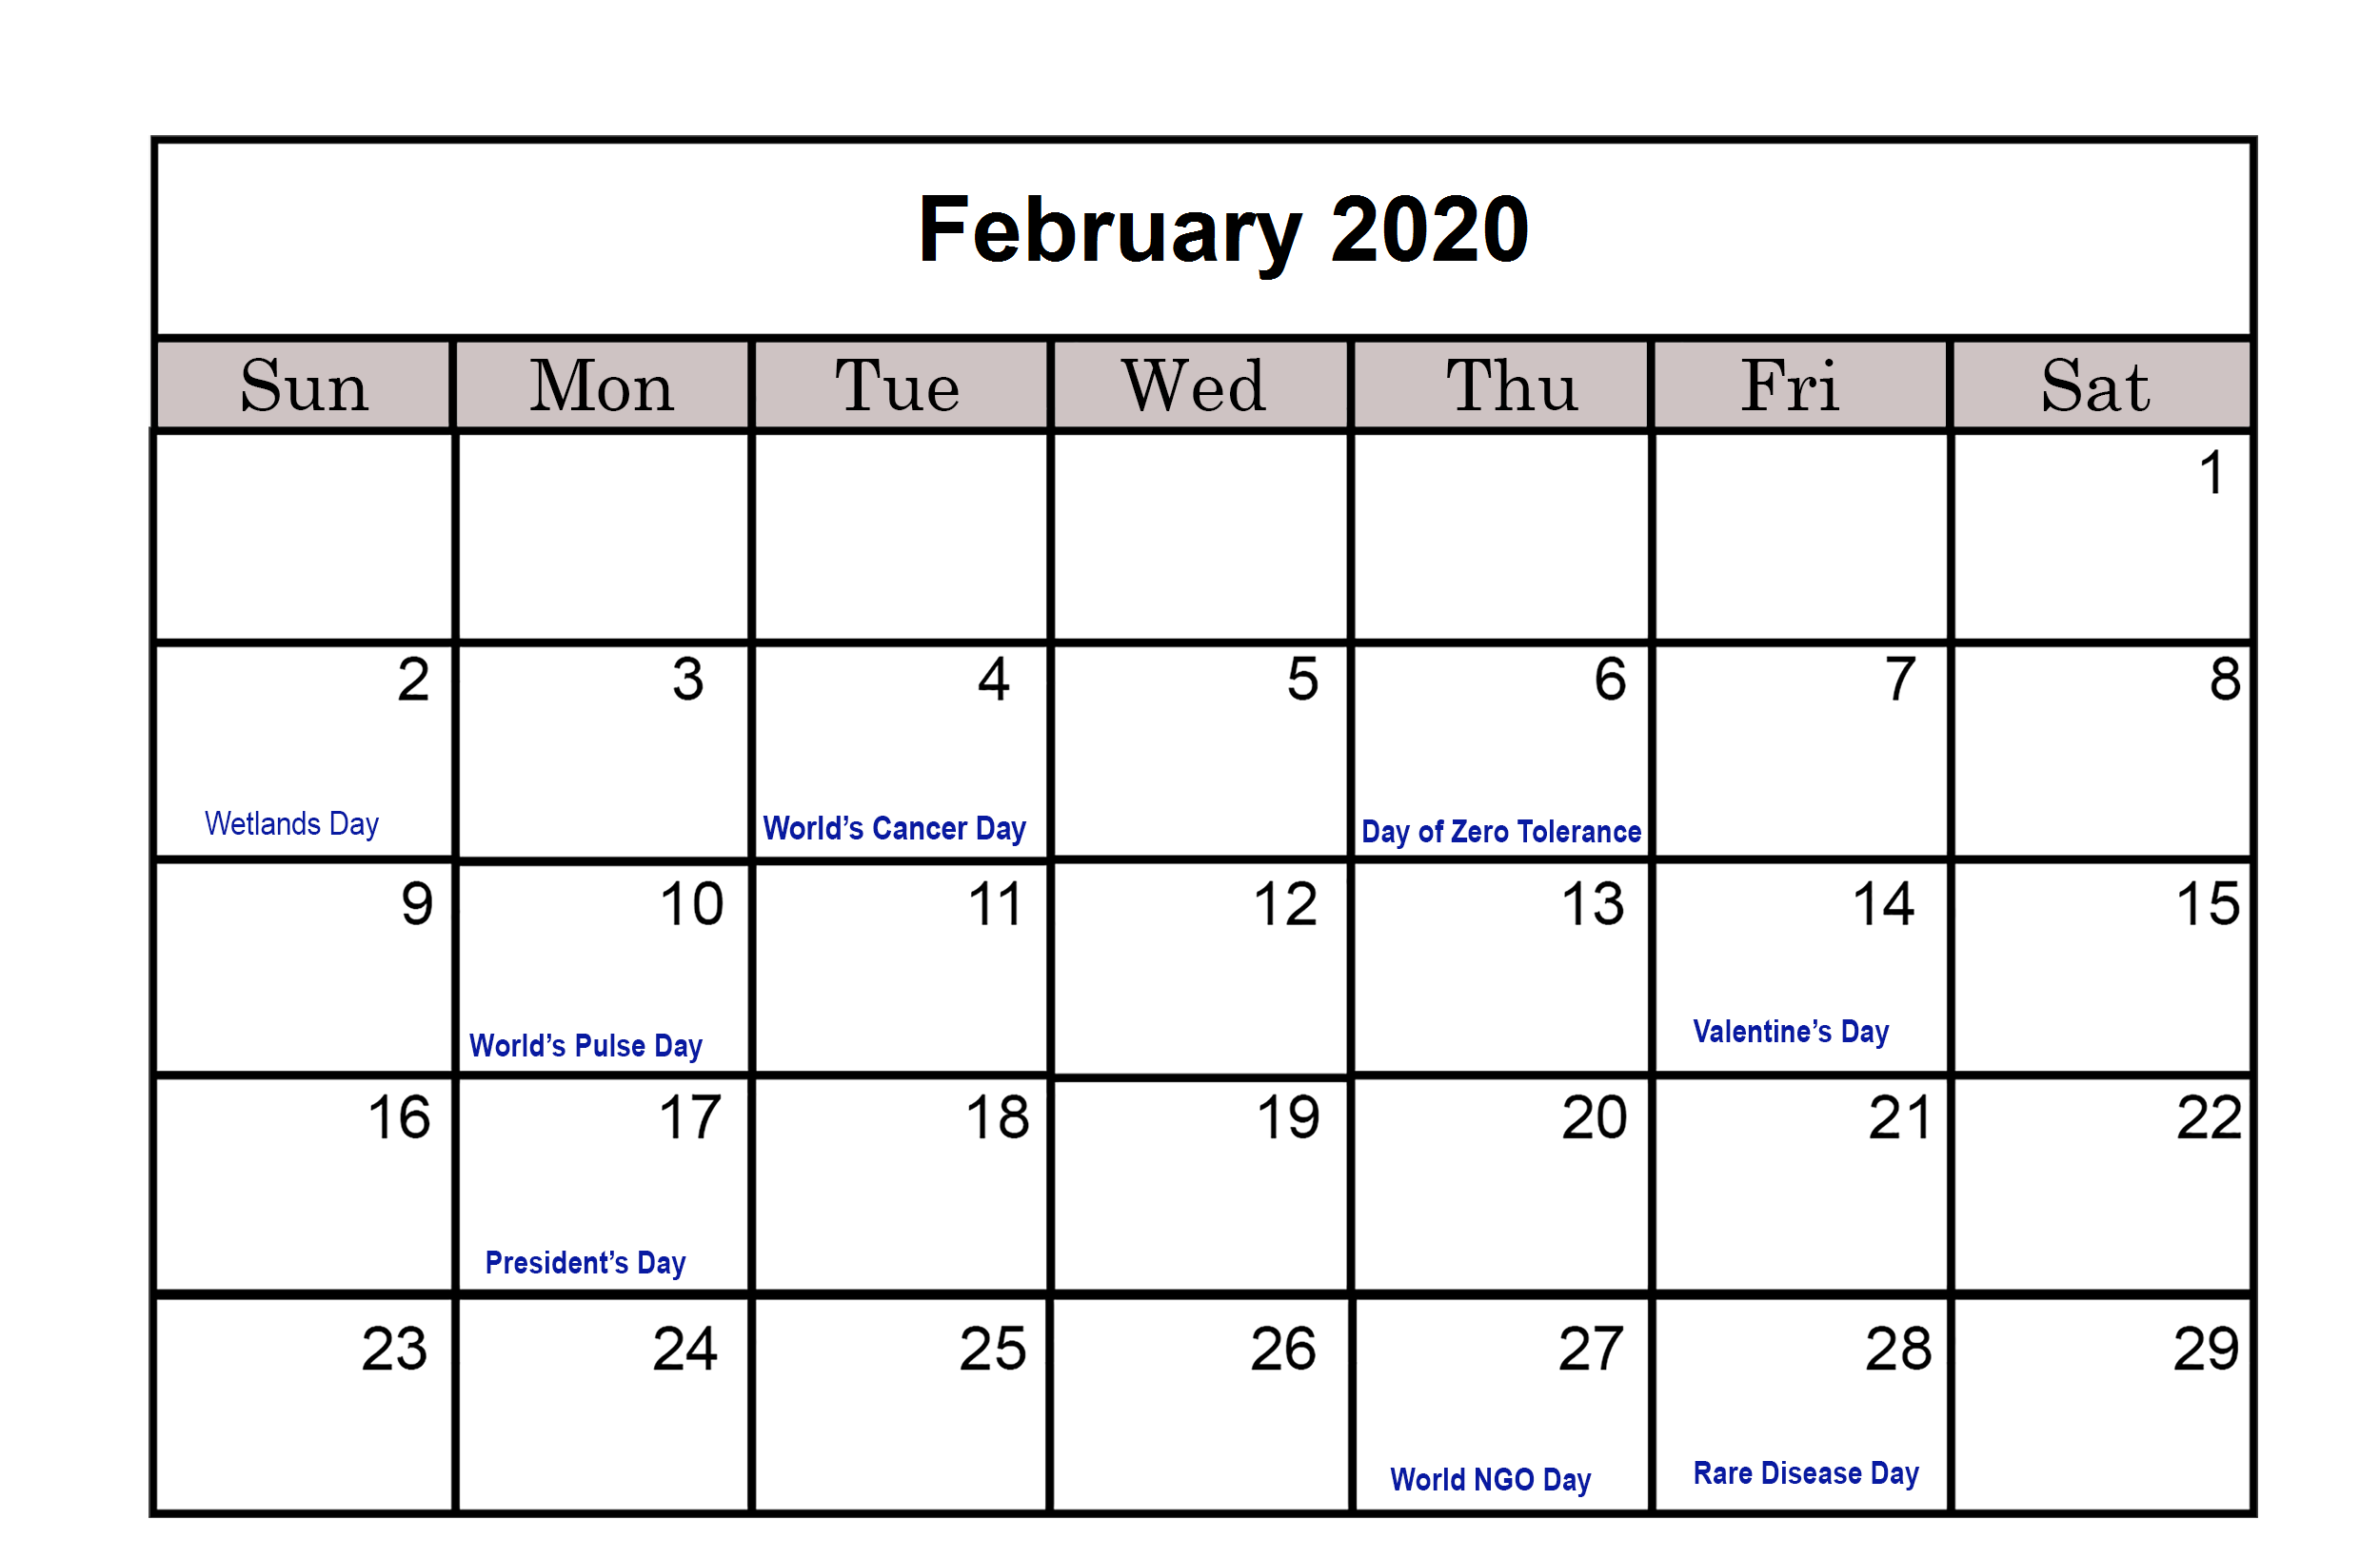 February 2020 Calendar With UK Holidays